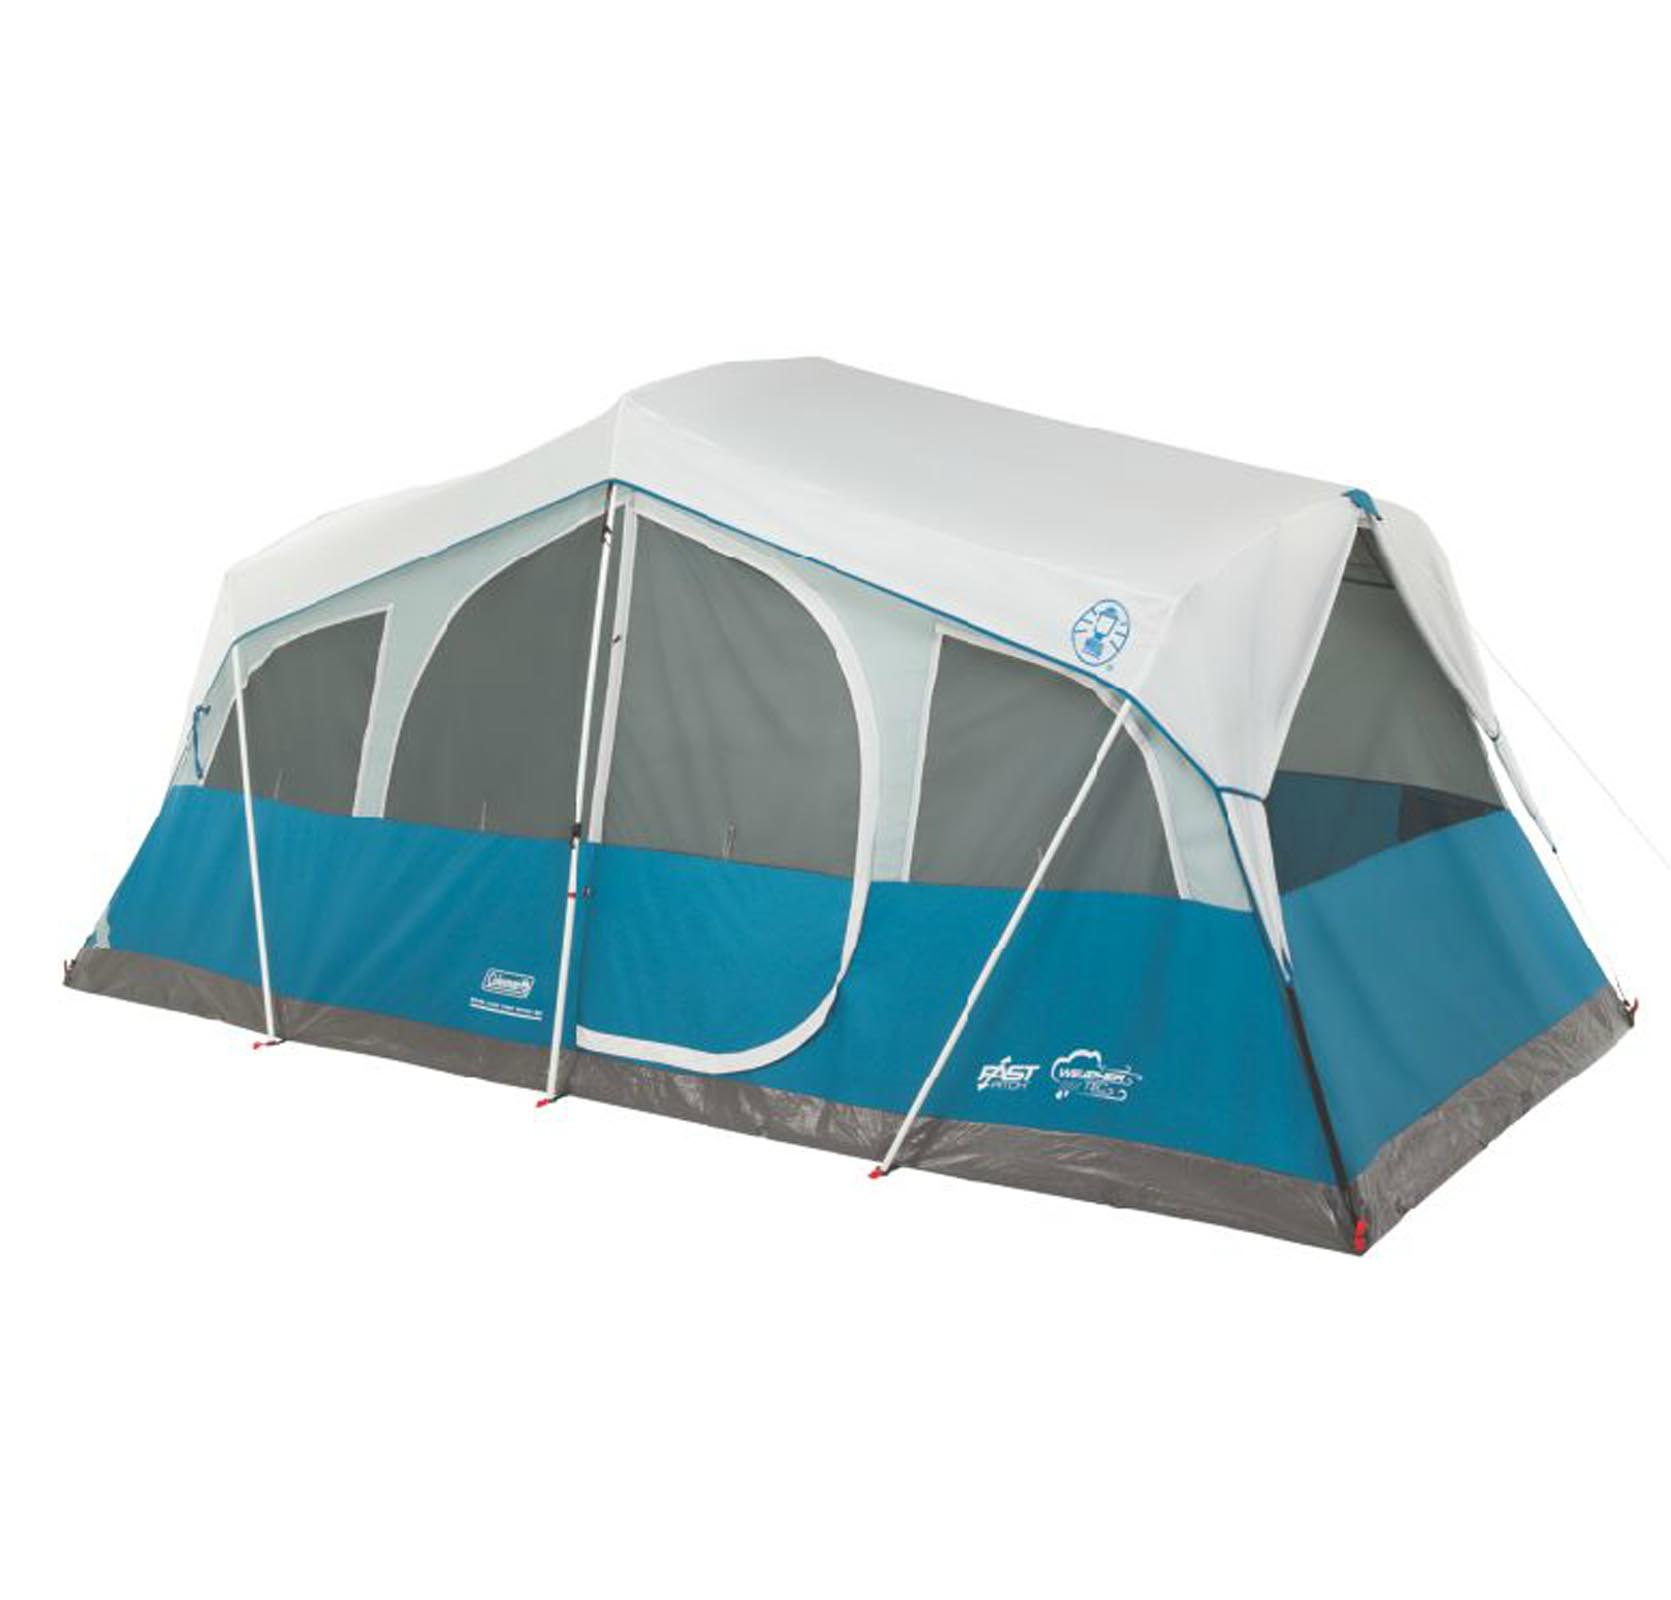 NEW Coleman Echo Lake Outdoor Camping 8 Person Fast Pitch...